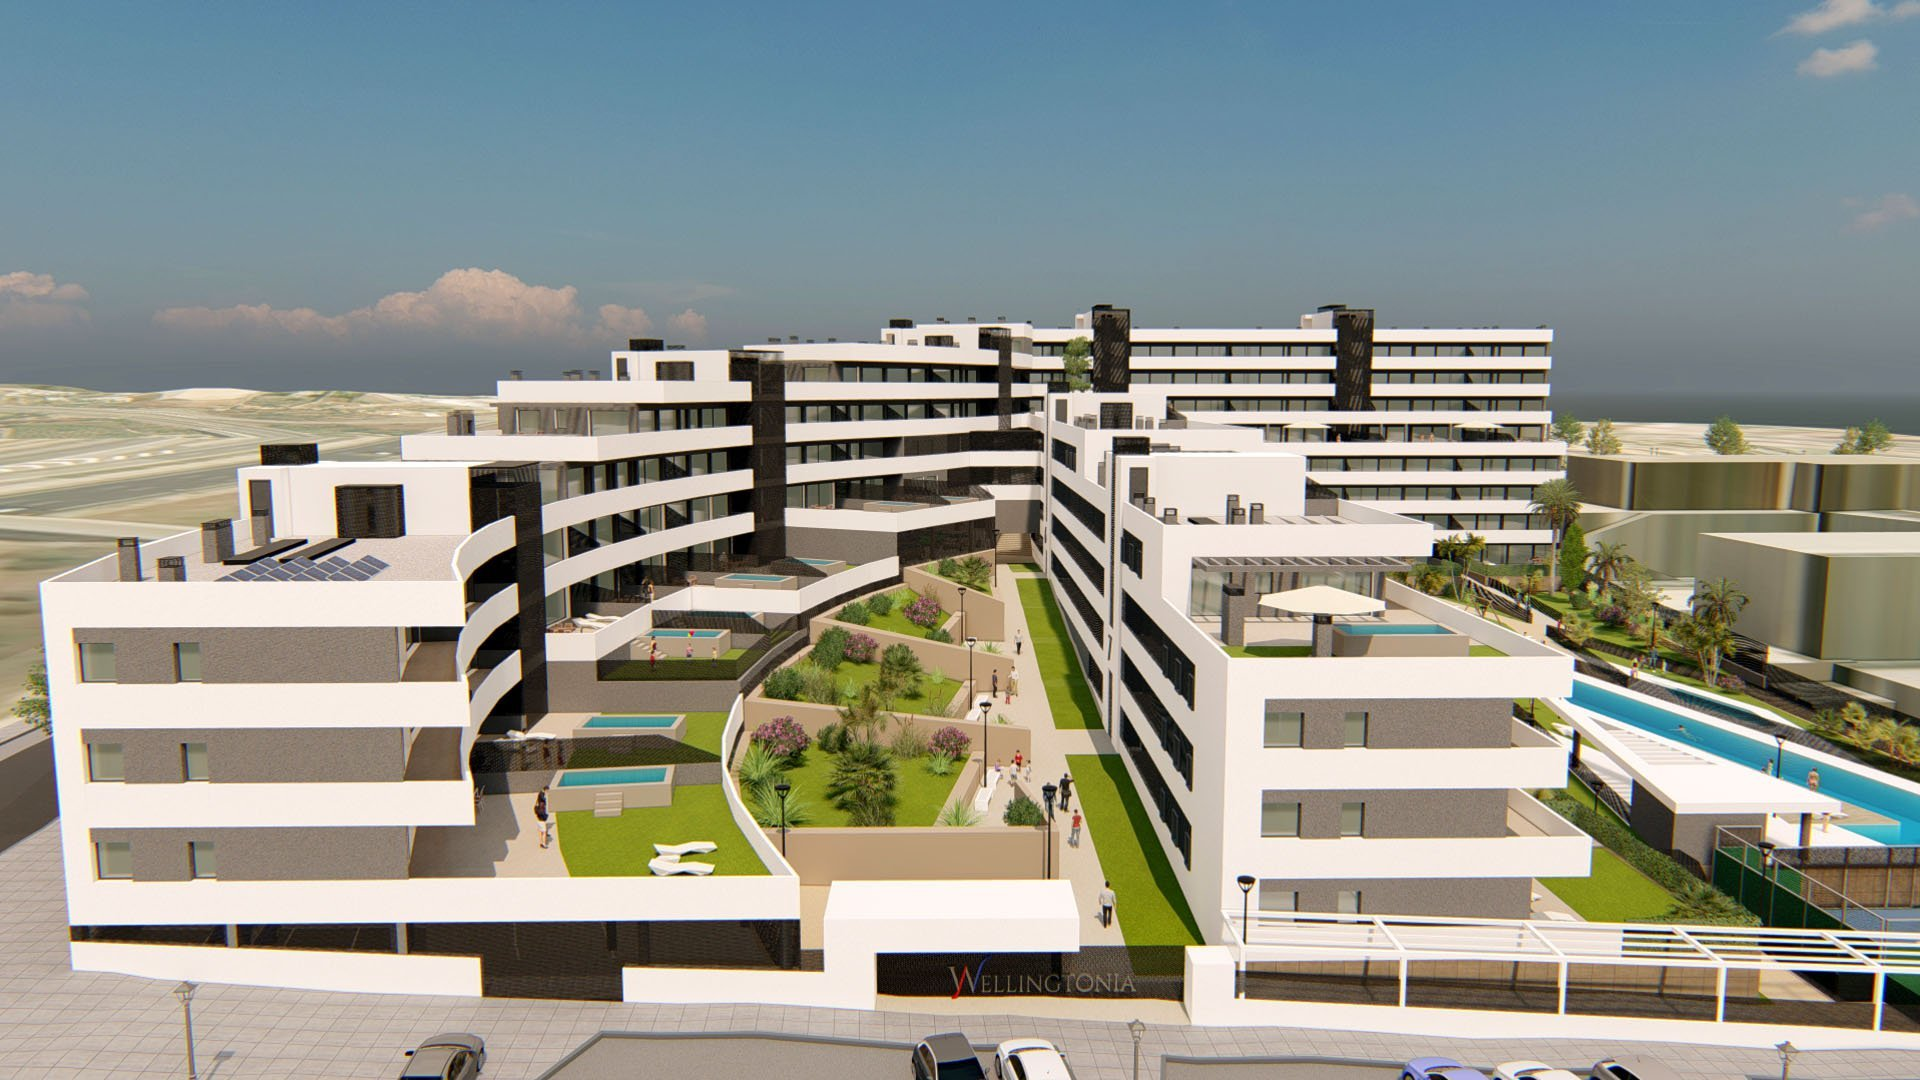 Residencial Wellingtonia: Residential complex in the heart of Estepona